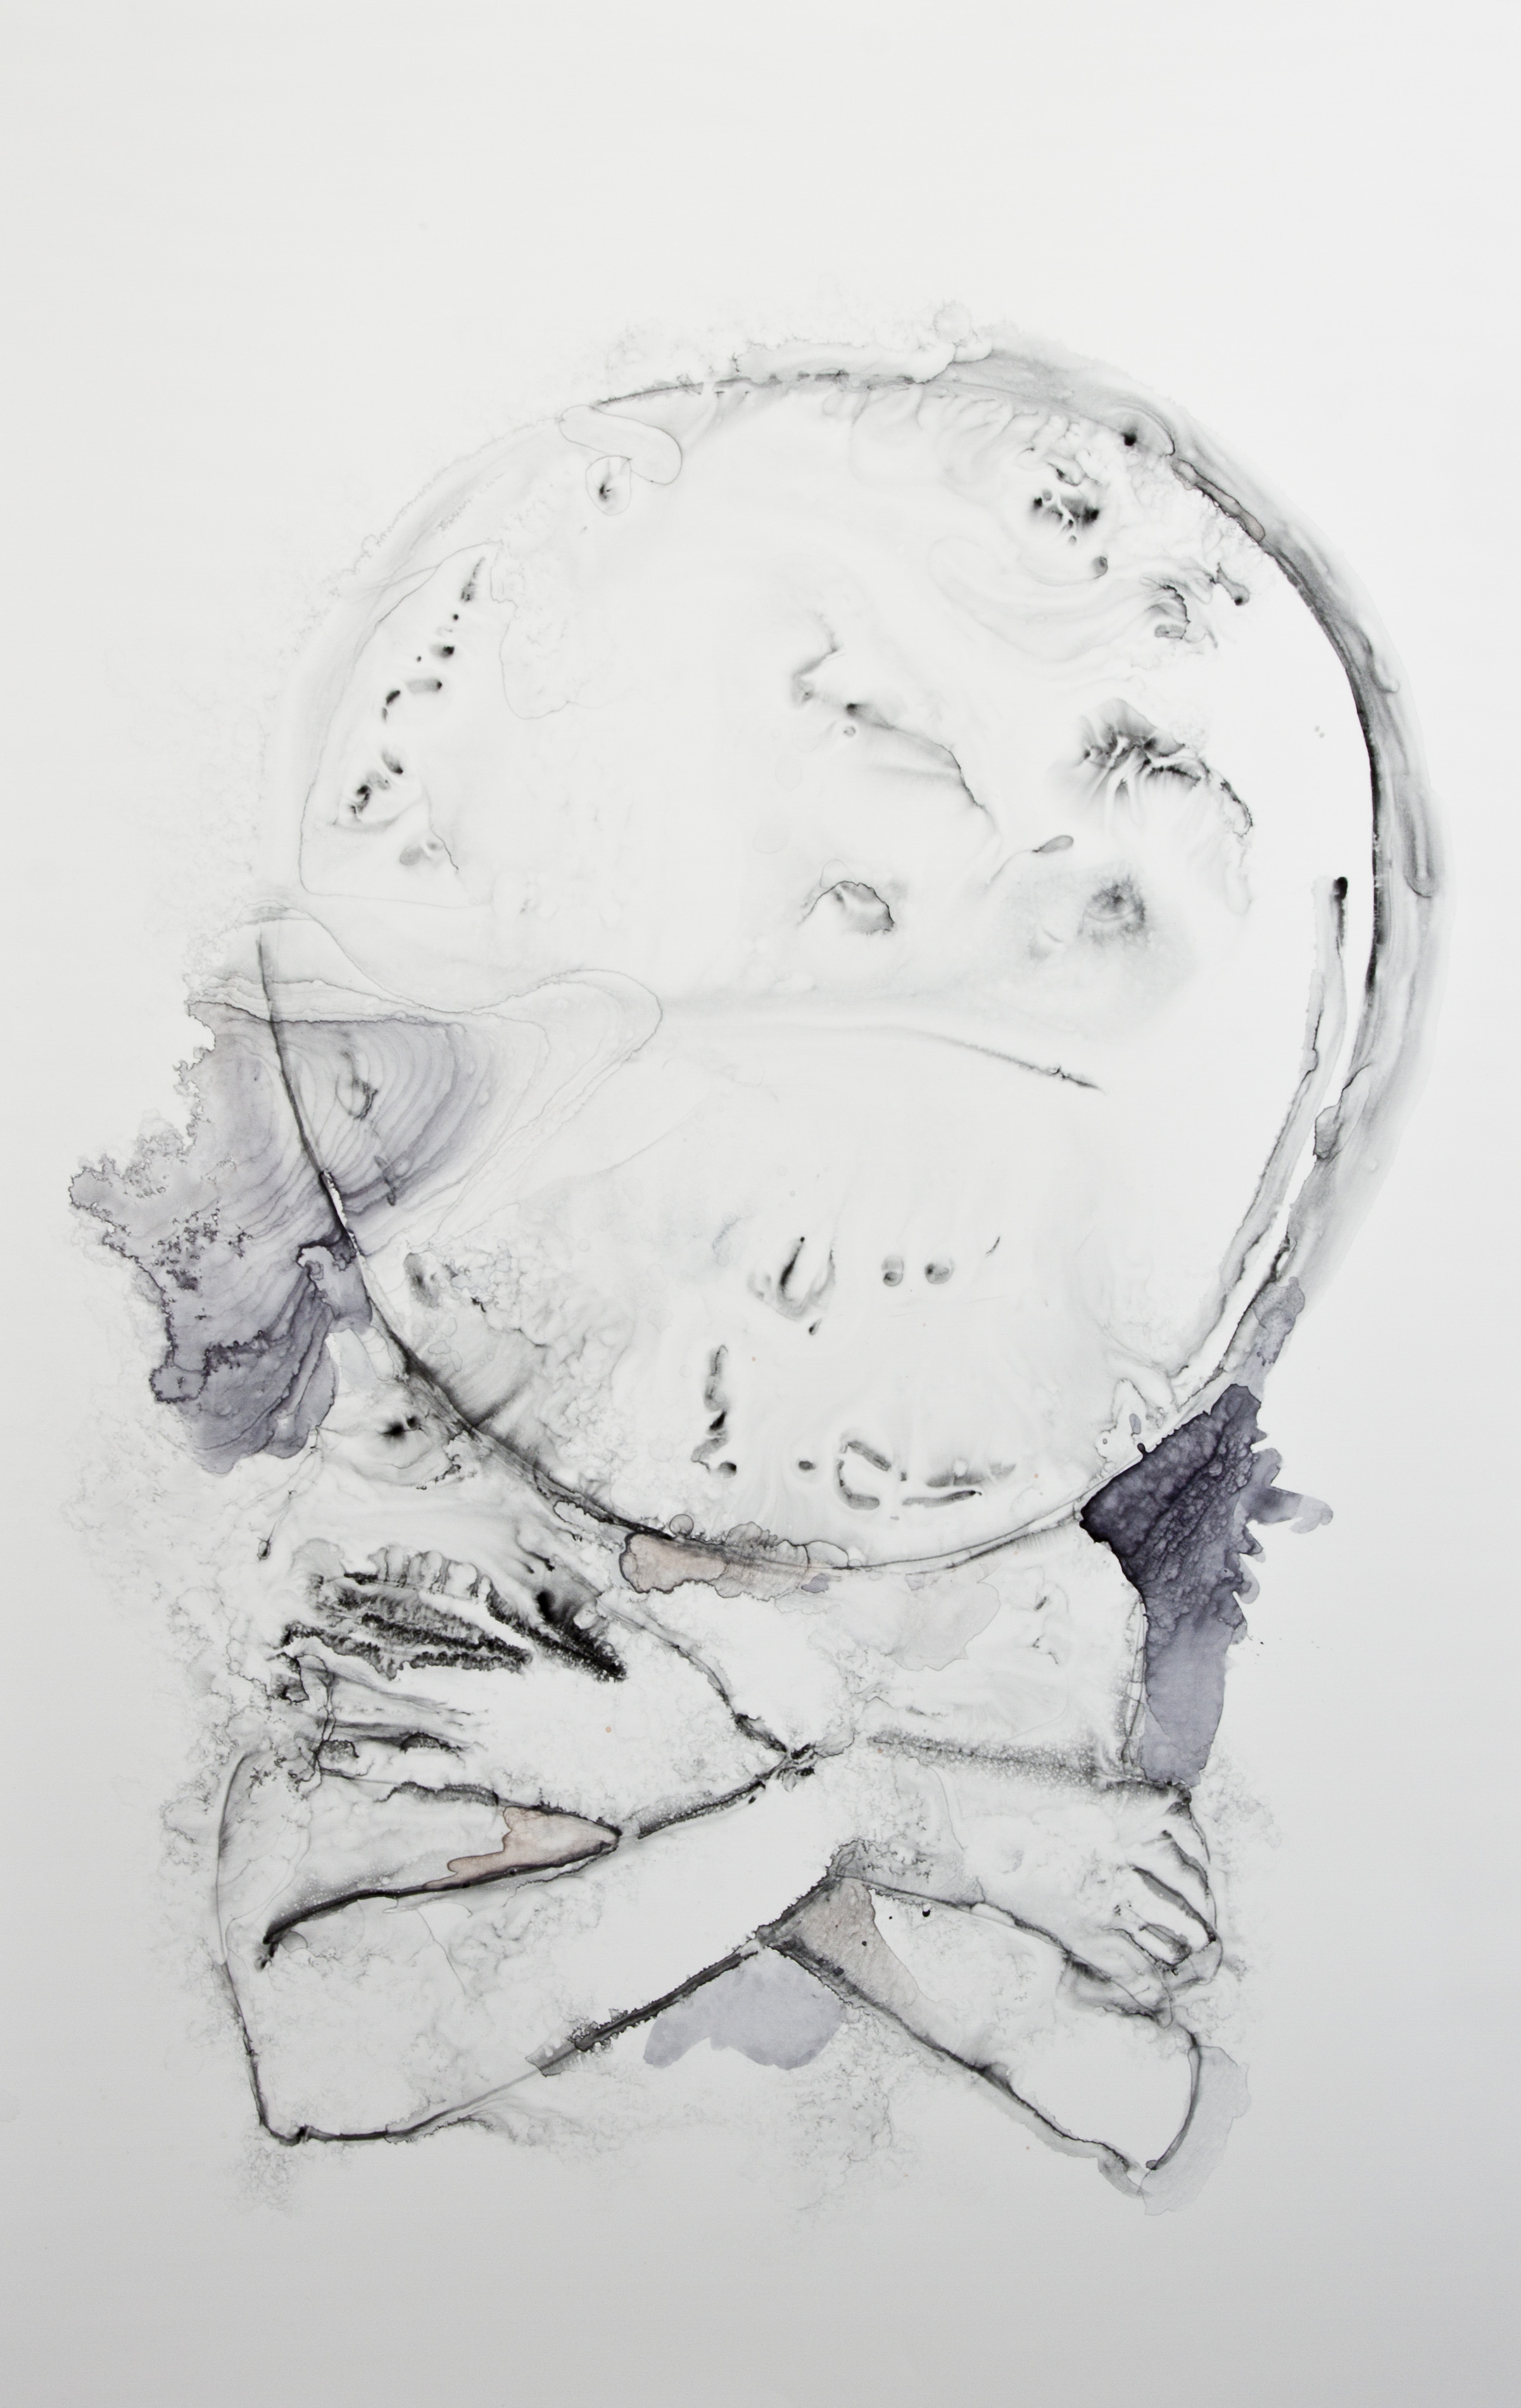 Crossing The Moon, 2016, watercolor on polypropylene, 40x26 inches